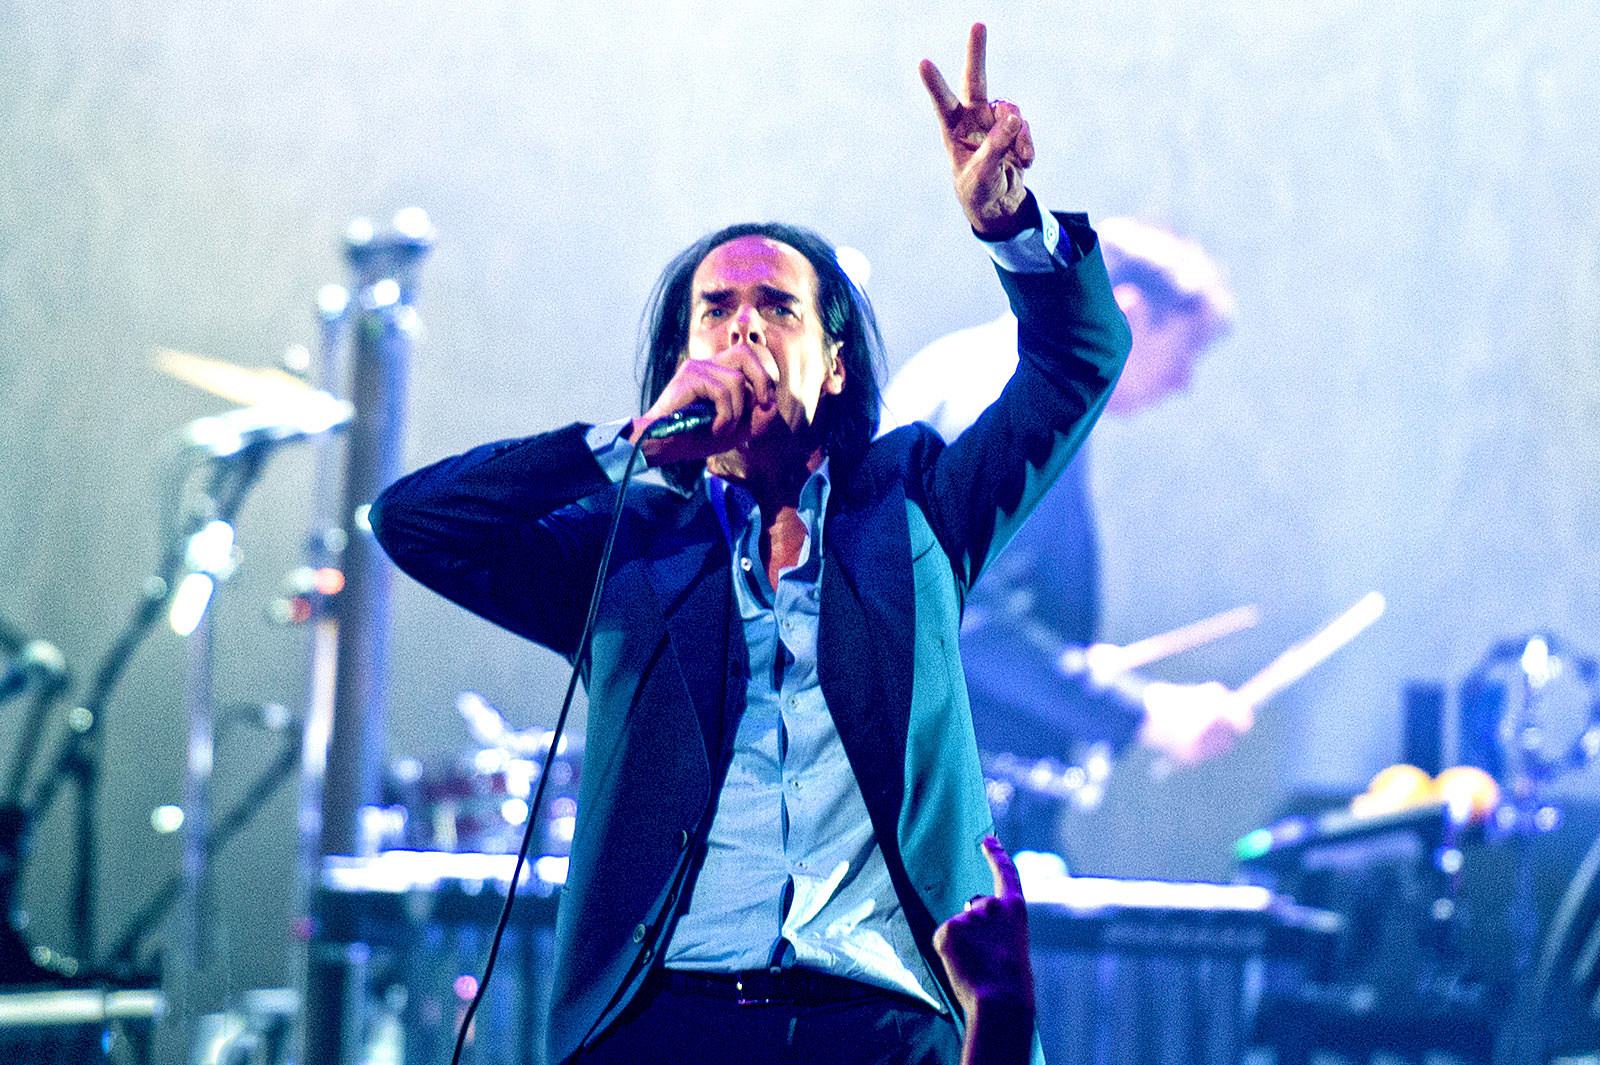 Aussie rocker Nick Cave says he's in Israel because of BDS